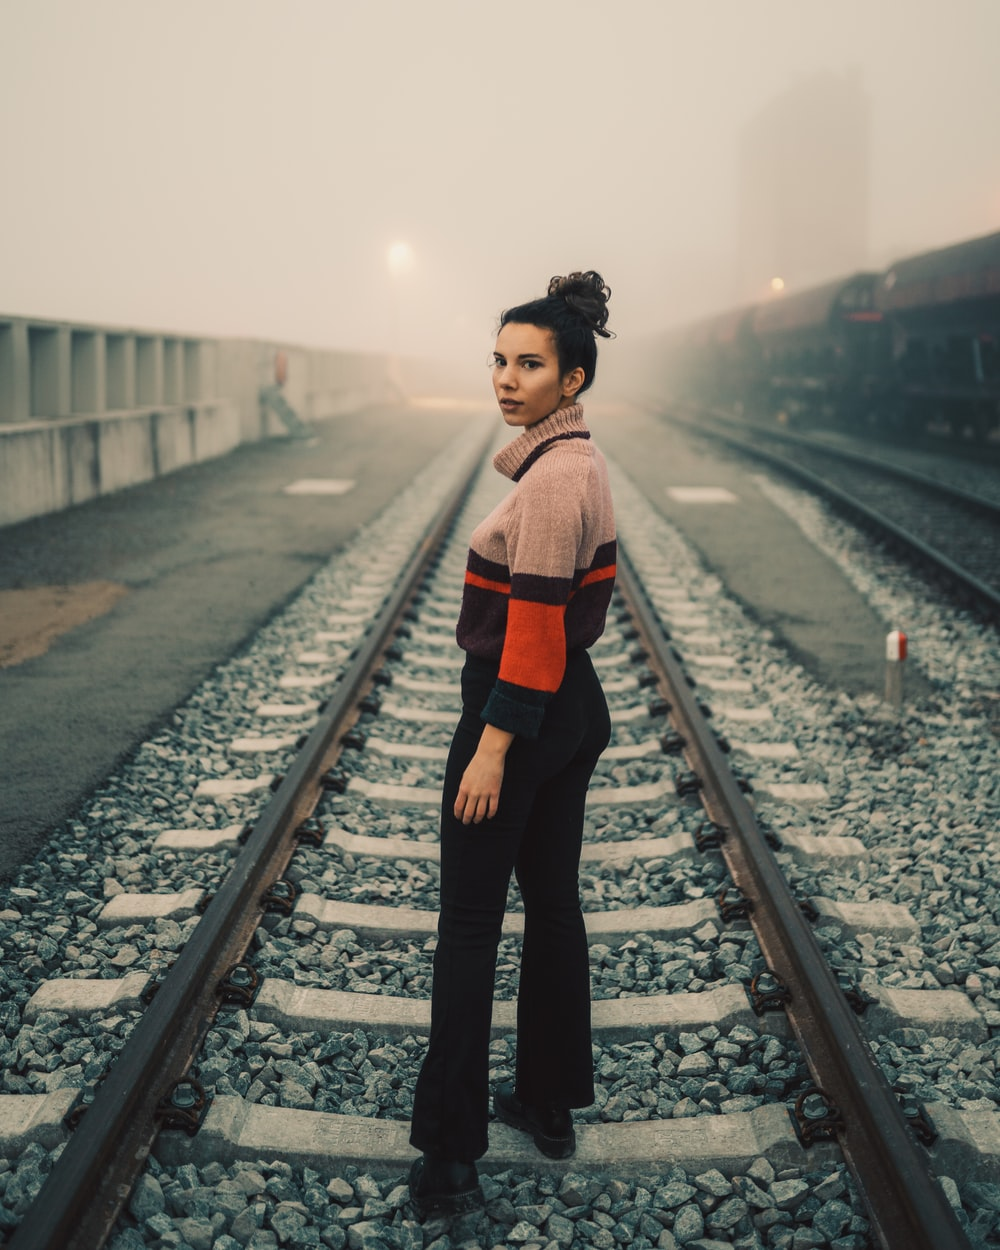 woman in red and black long sleeve shirt and black pants standing on train rail during